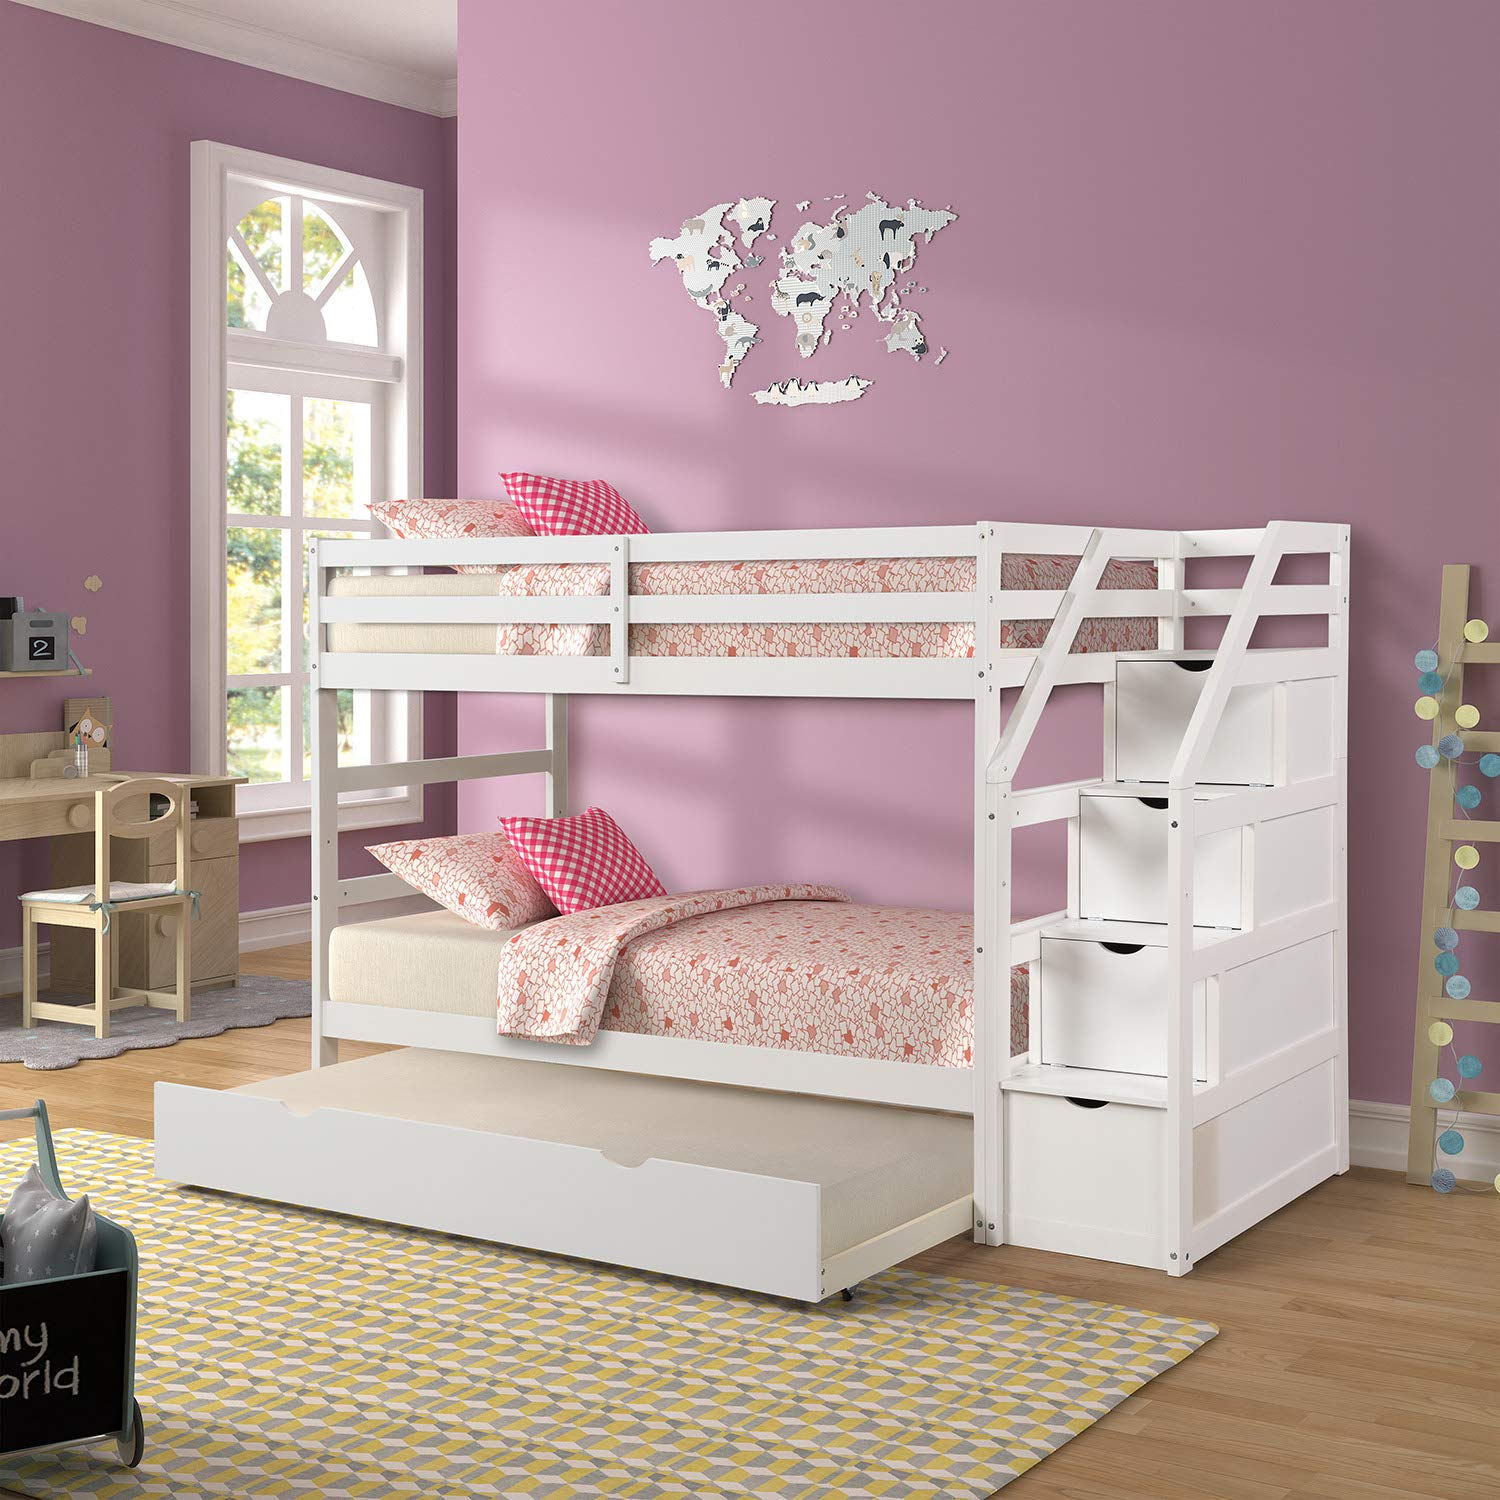 Twin Over Twin Bunk Bed with Trundle and Storage Drawers, WeYoung Pine Wood Sturdy Twin Twin Bunk Bed Frame in The Steps White